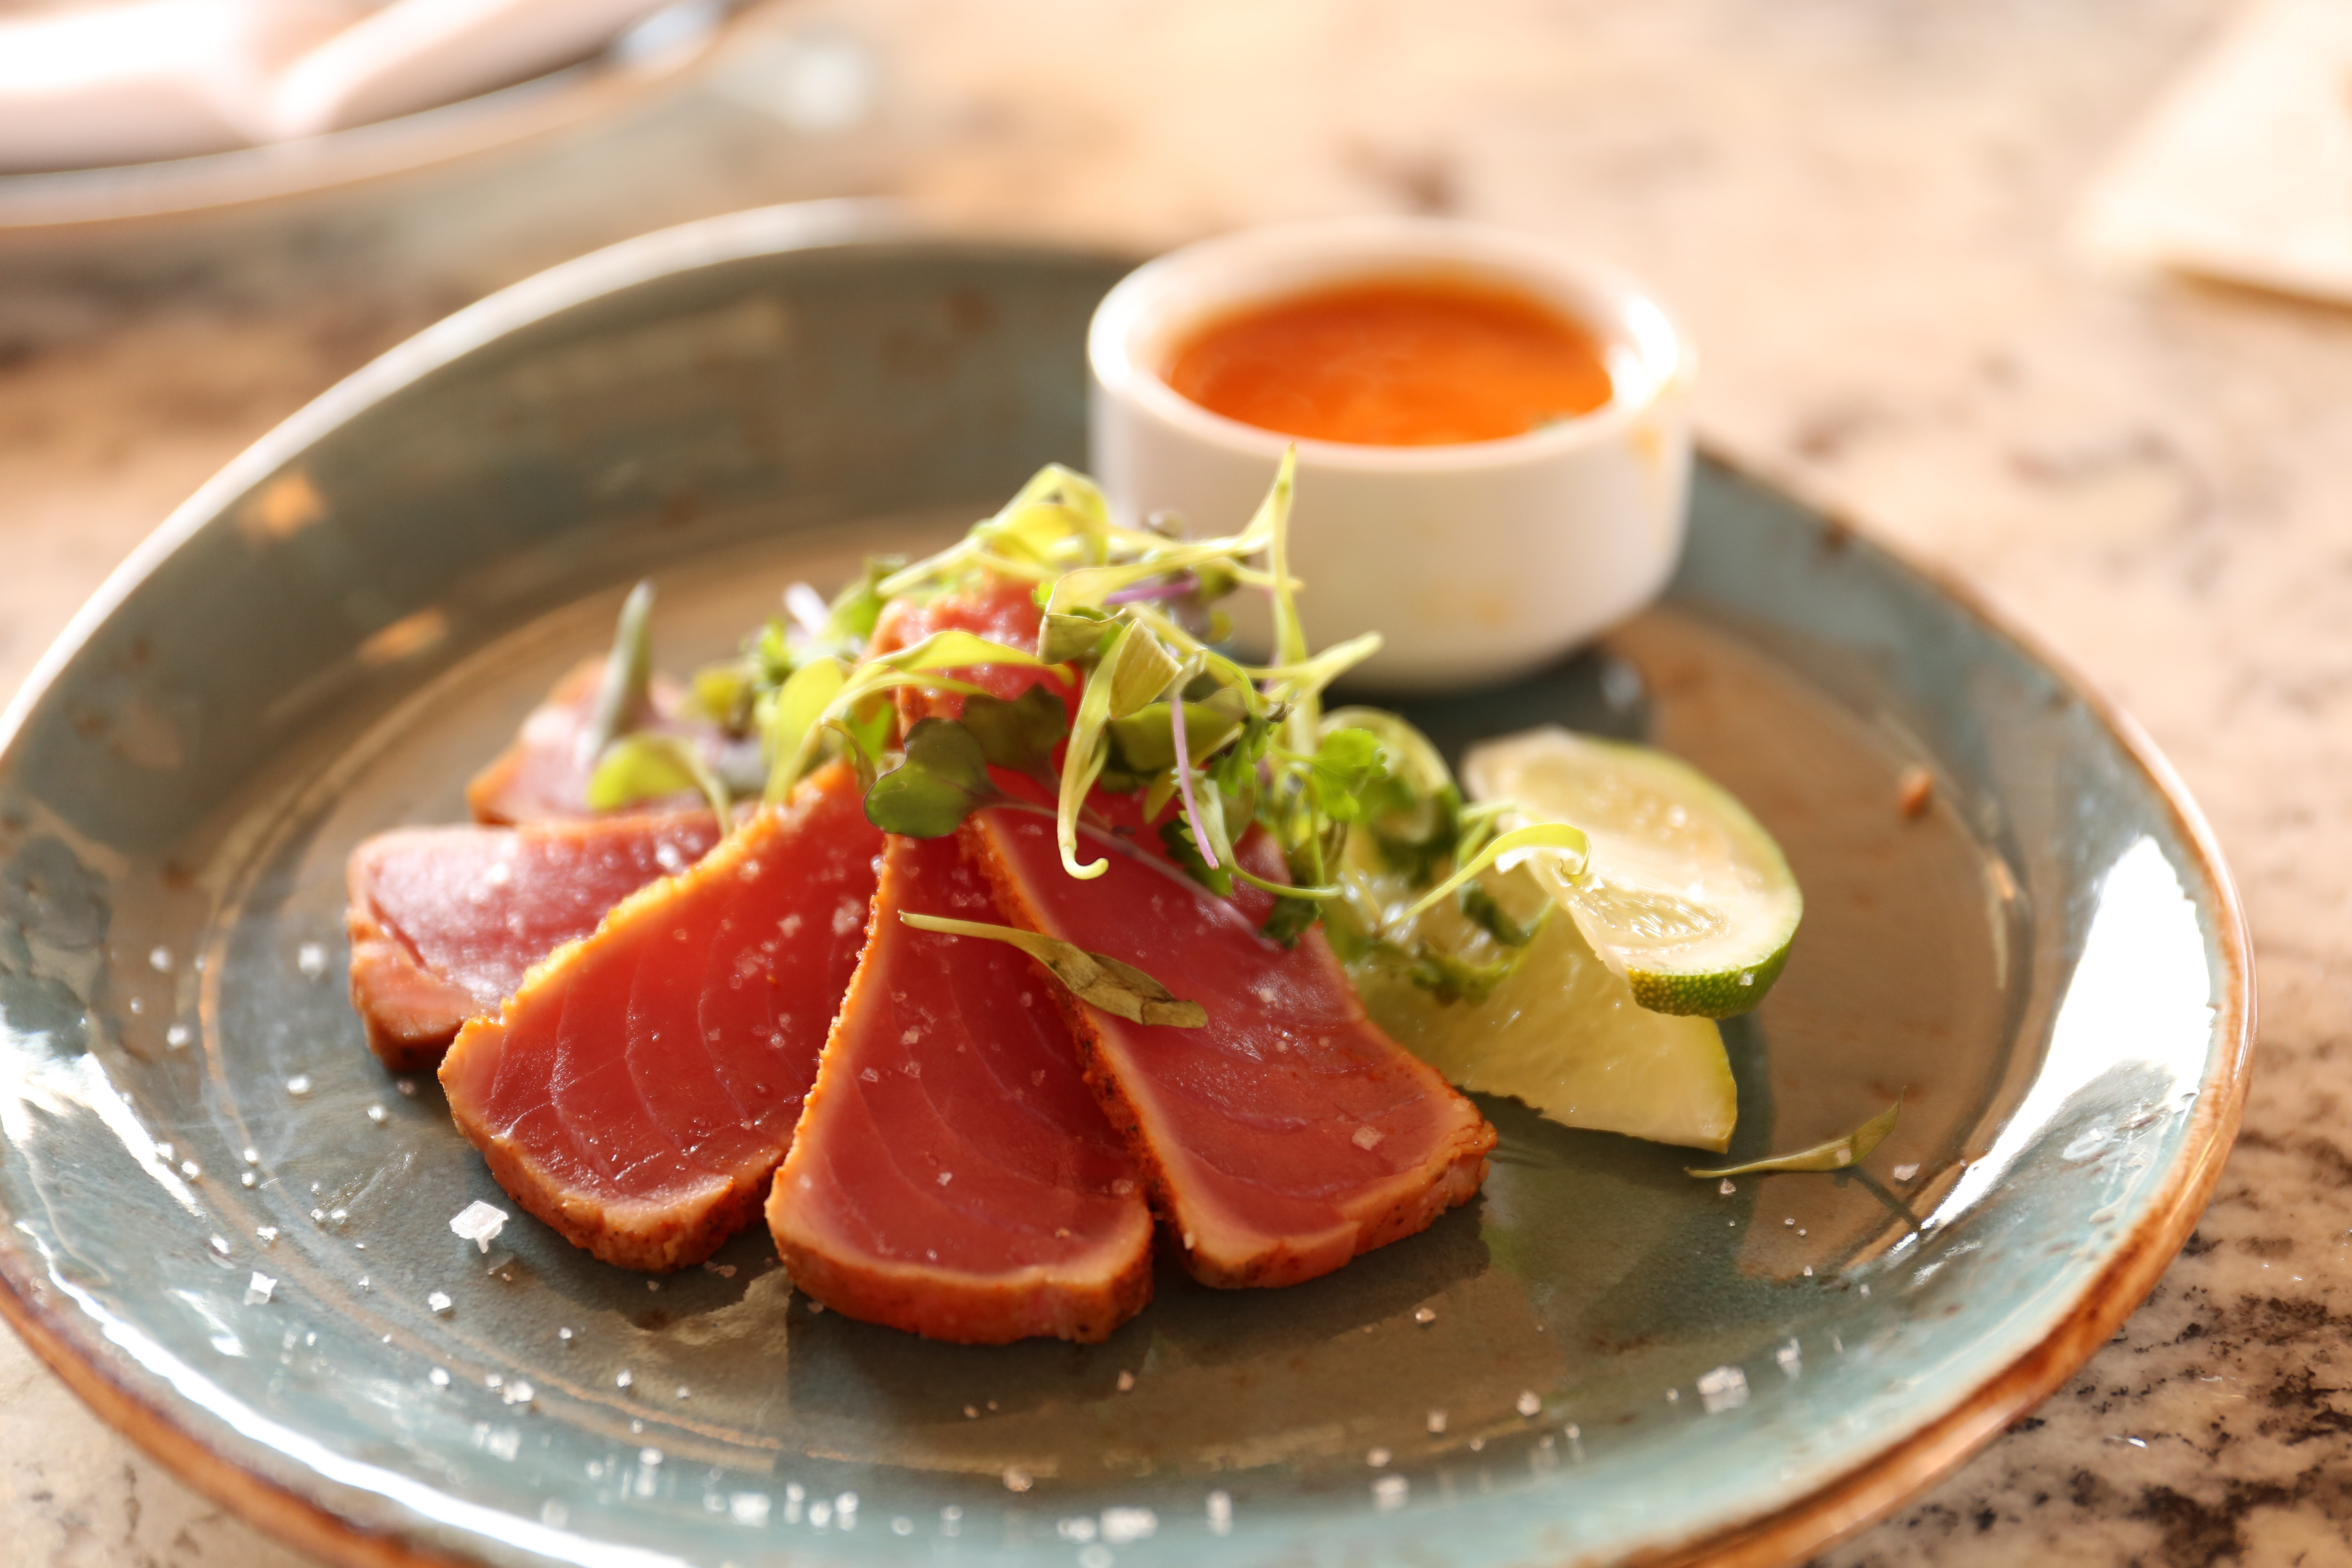 A saucer of sliced raw fish garnished with herbs and lime served with an orange dipping sauce